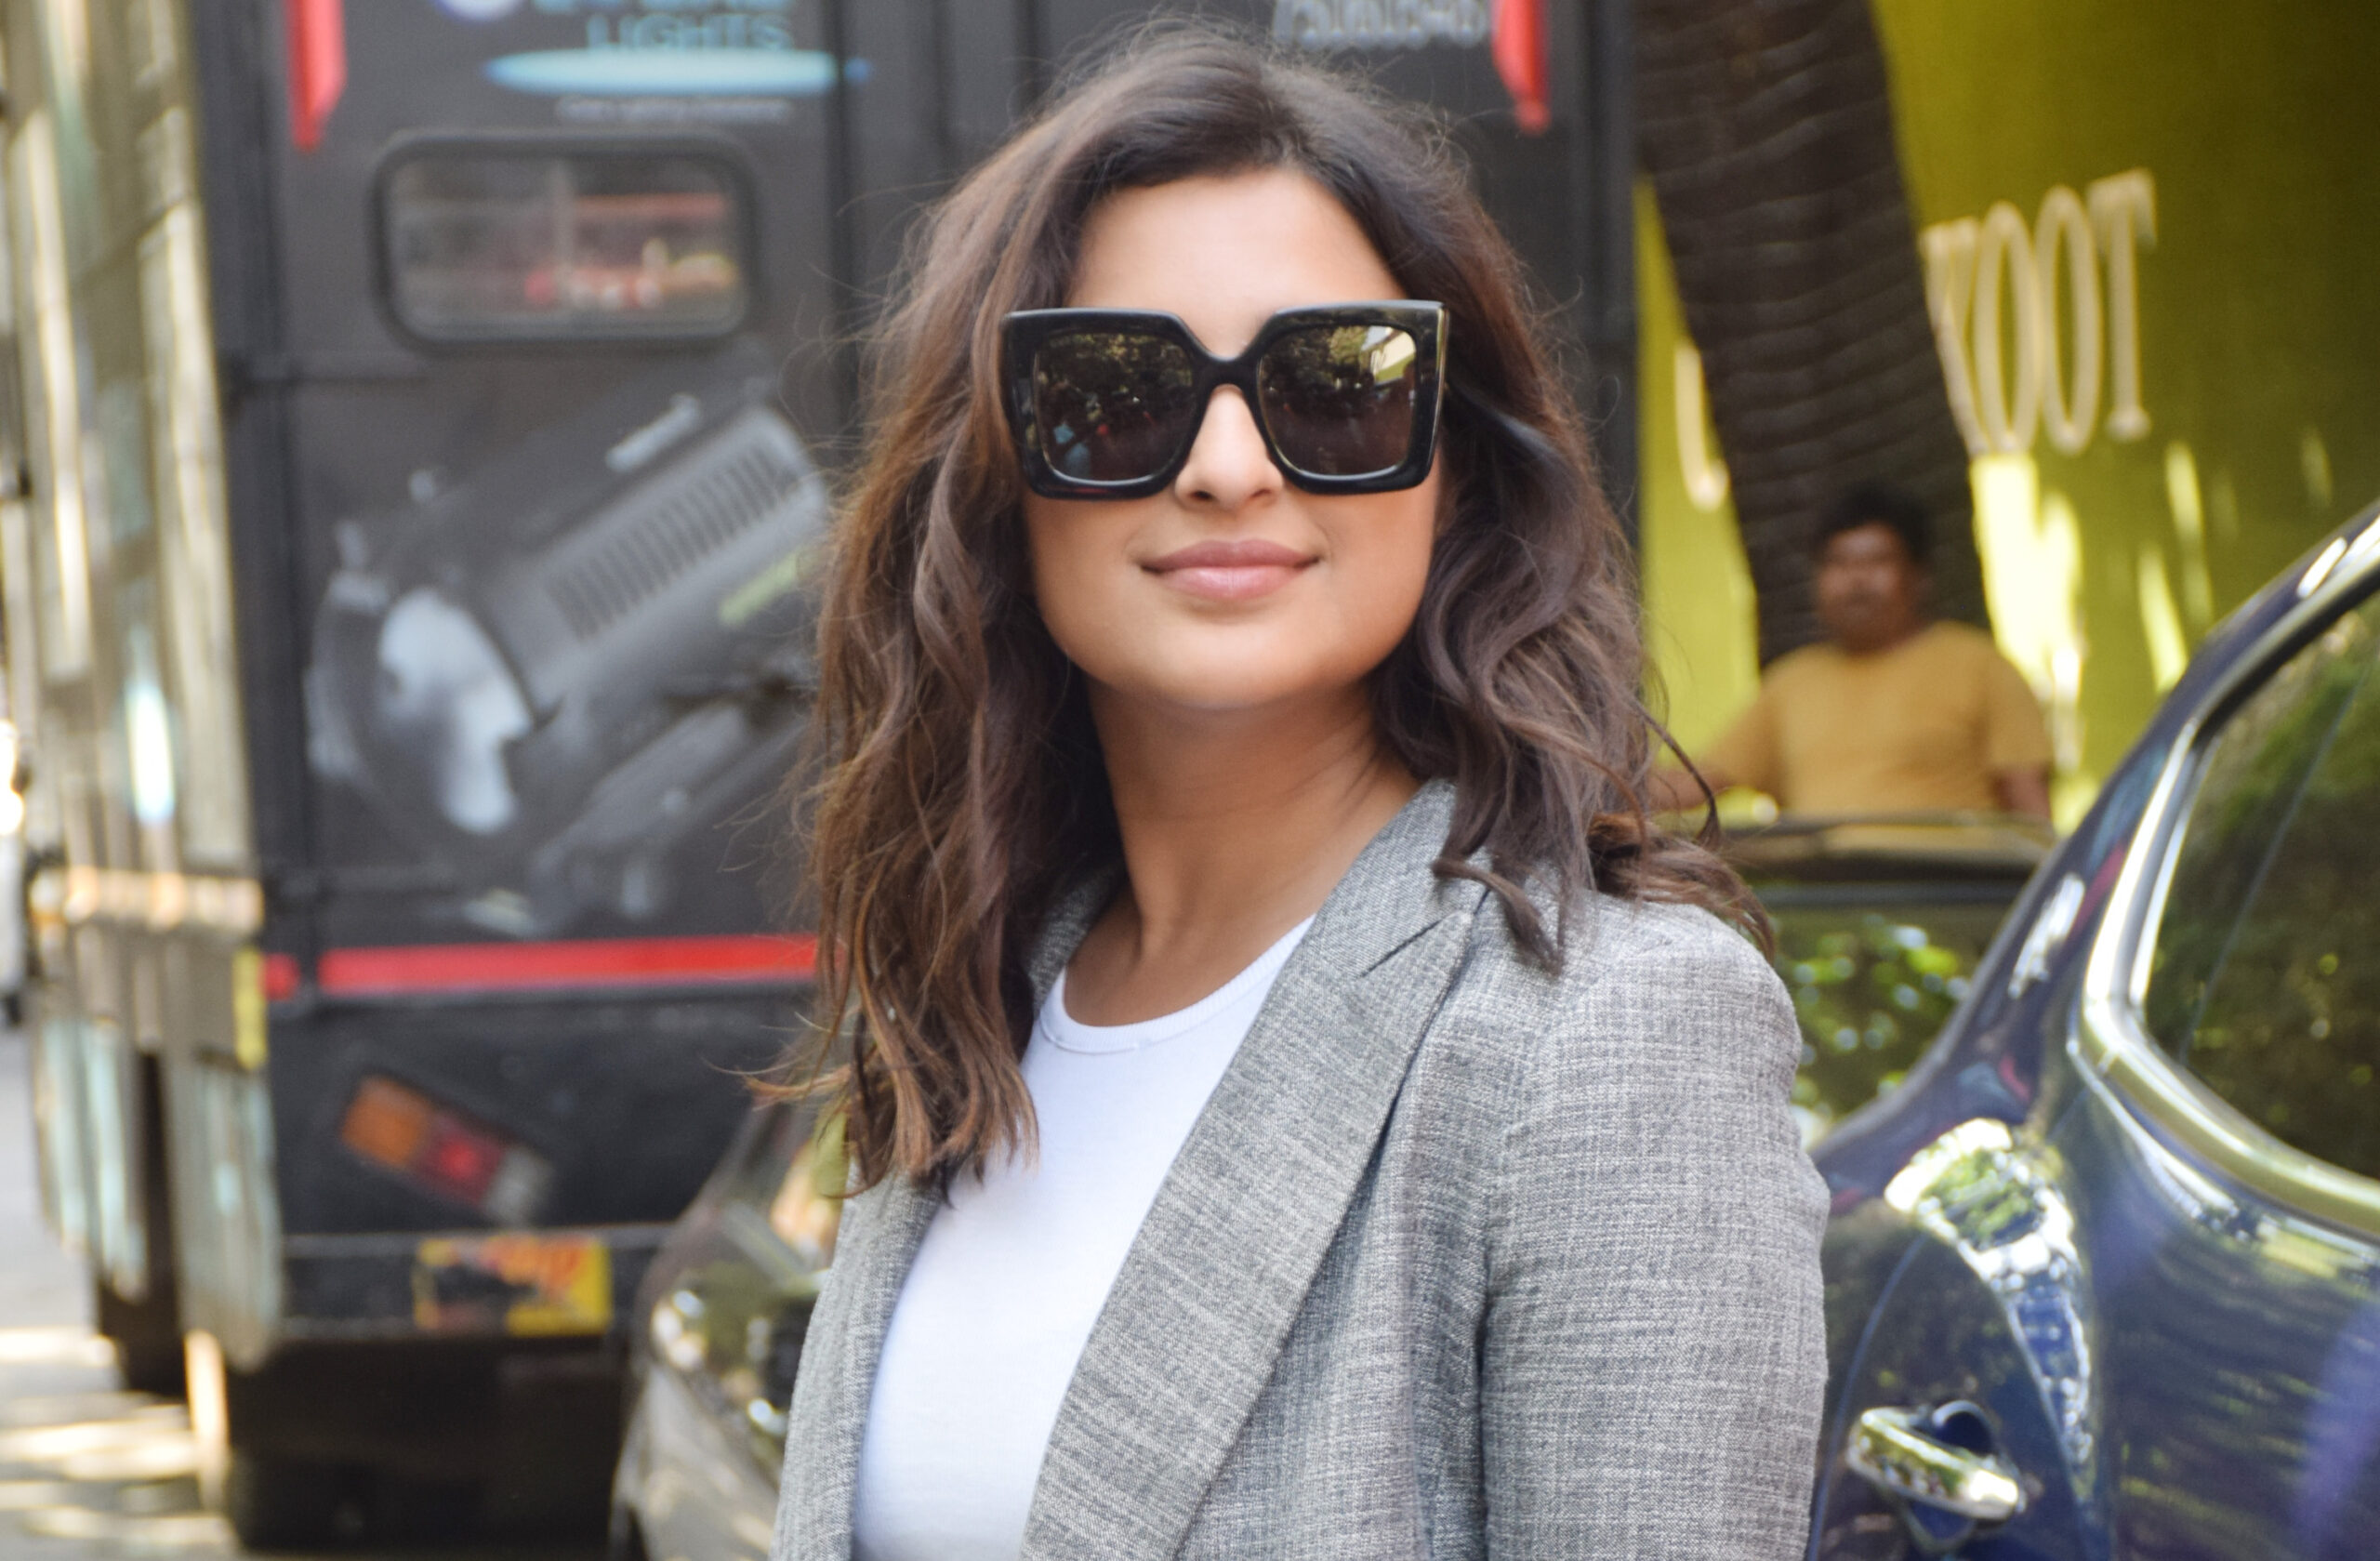 Nick Jonas' maturity has impressed Parineeti Chopra